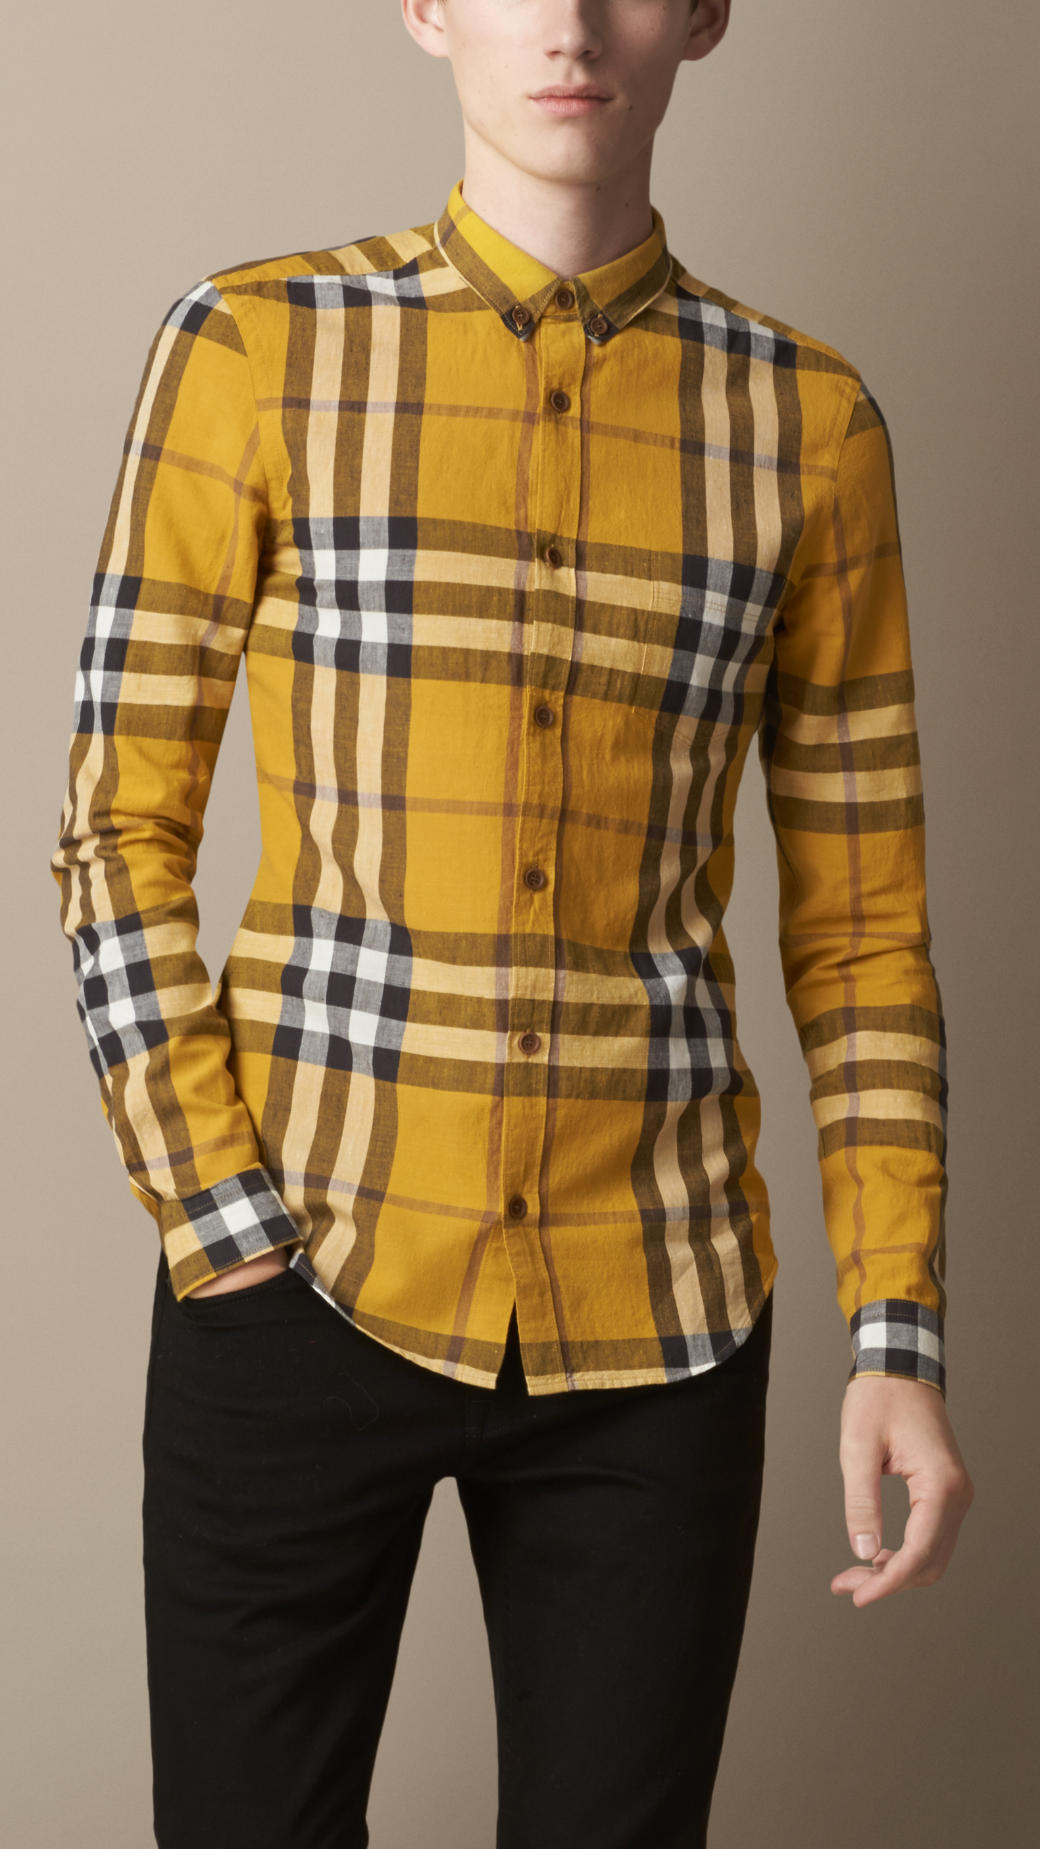 Lyst - Burberry Exploded Check Cotton Linen Shirt in Yellow for Men 08bcf41af1